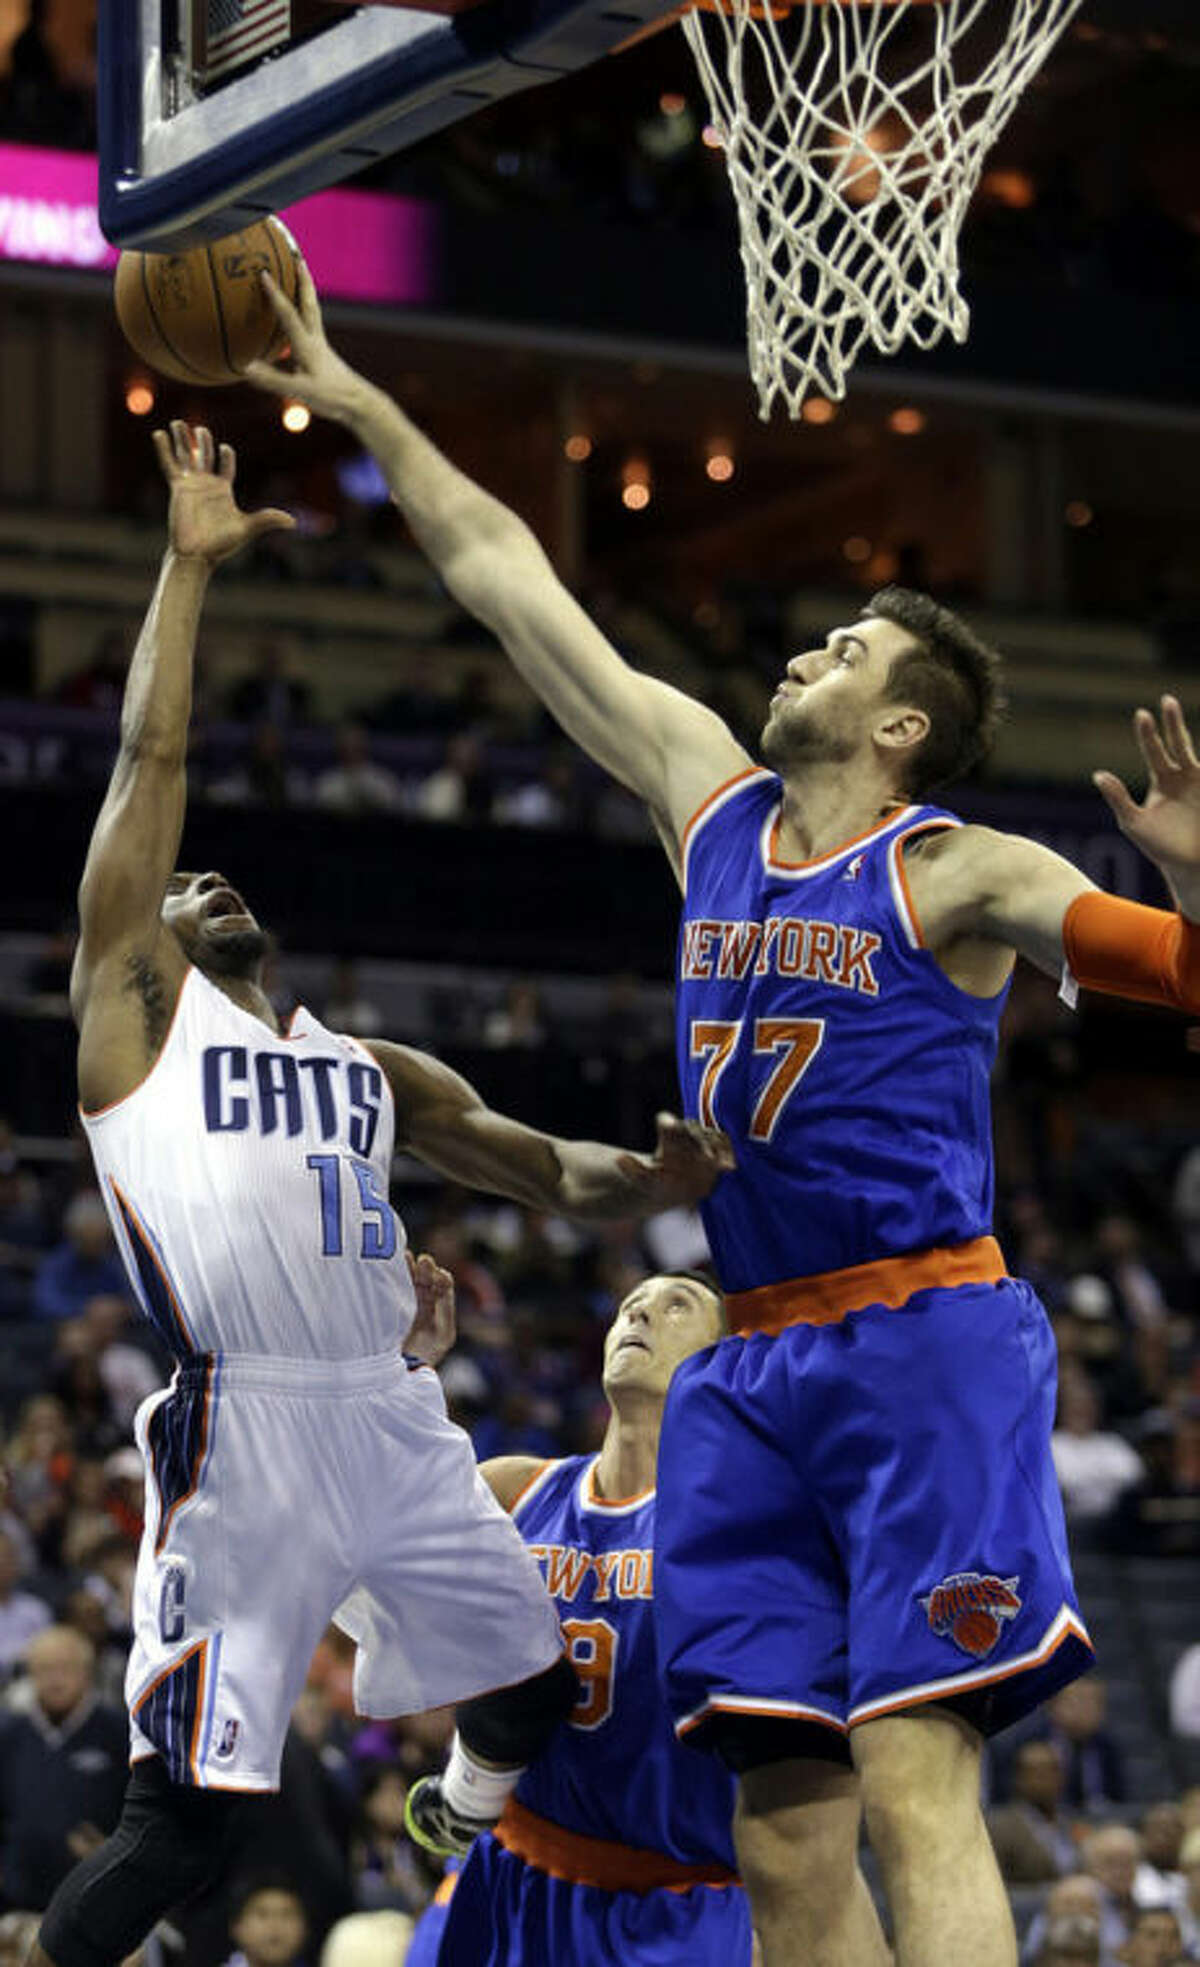 New York Knicks forward Andrea Bargnani, right, of Italy, blocks the shot of Charlotte Bobcats guard Kemba Walker in the first half of an NBA basketball game in Charlotte, N.C., Friday, Nov. 8, 2013. (AP Photo/Nell Redmond)